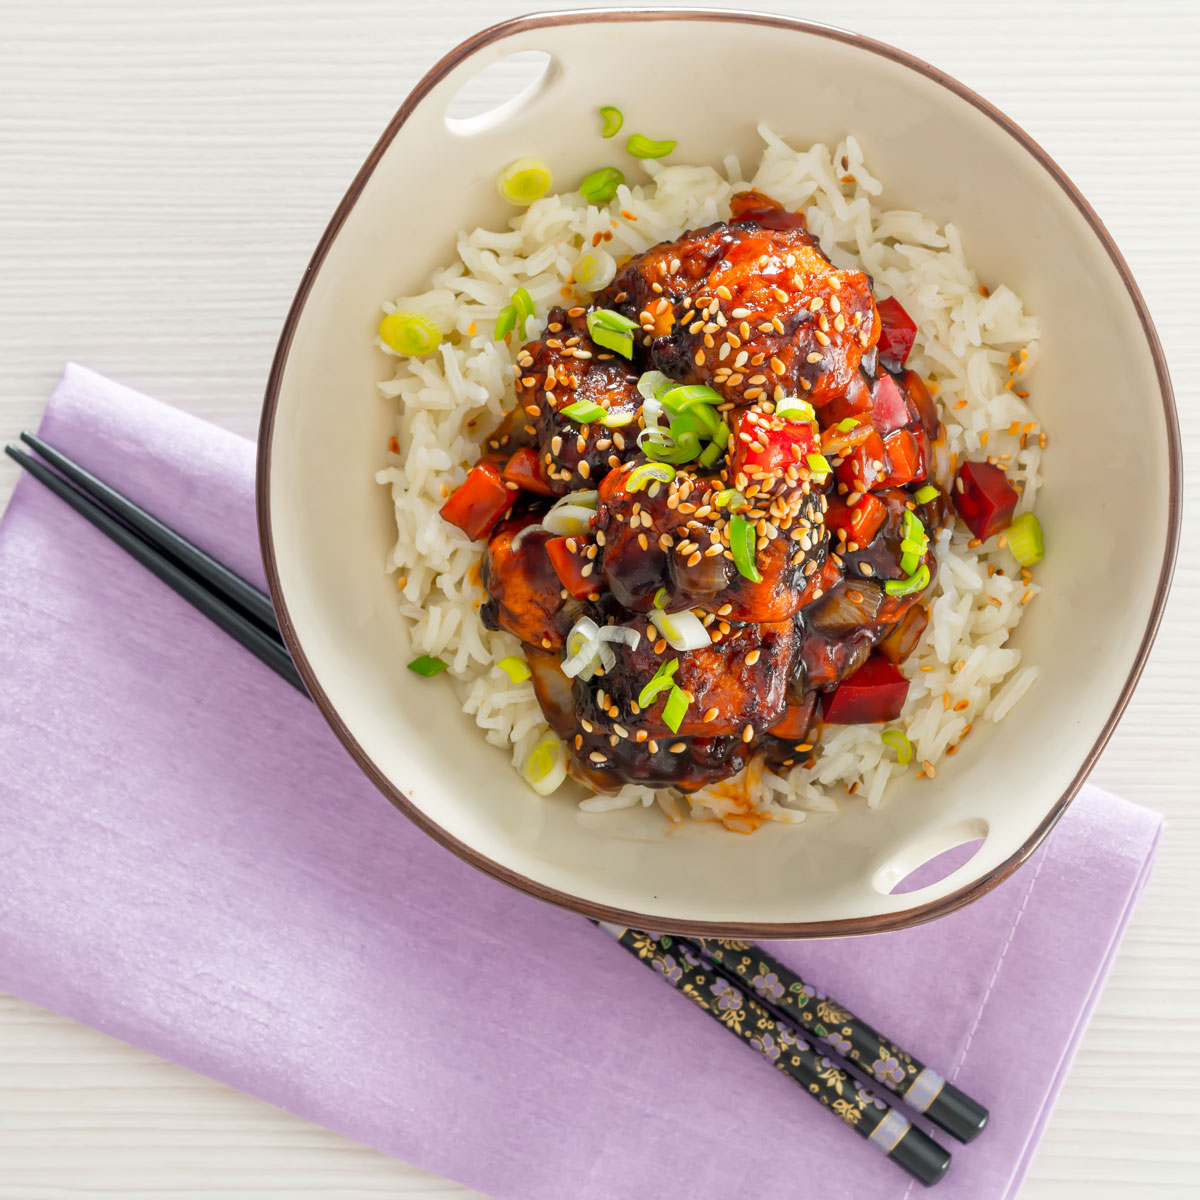 Sweet and sour pork balls were probably my introduction to Chinese food growing up in the UK, here is a version that plays homage to my memories.